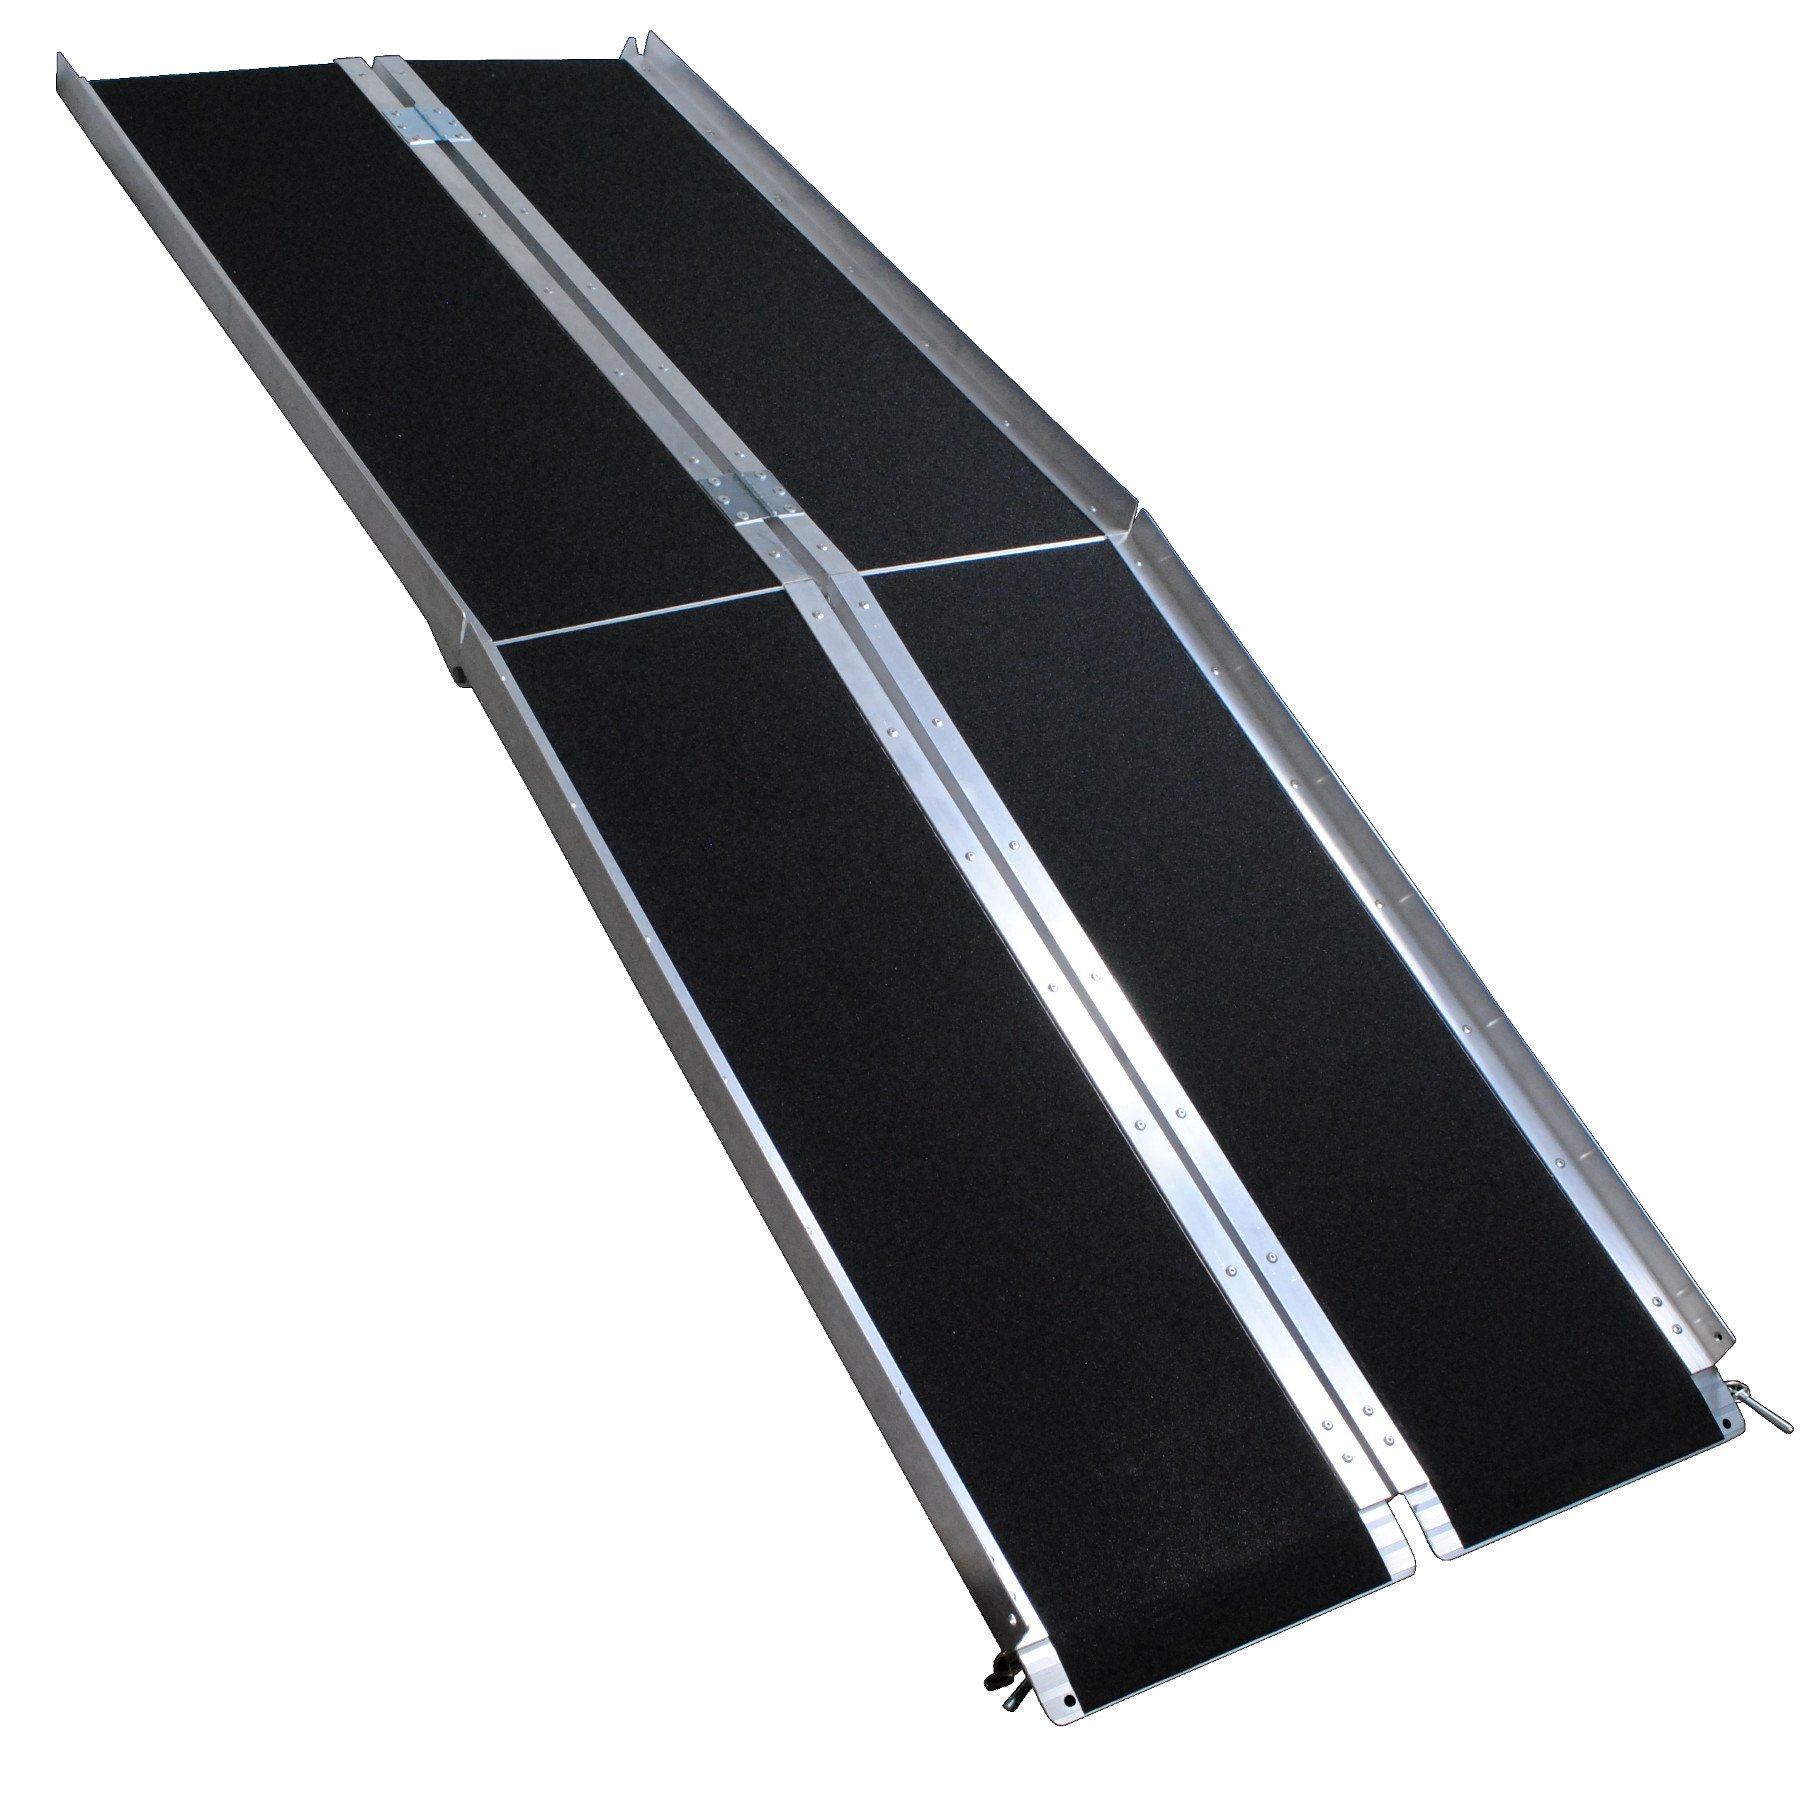 Big Horn Aluminum Multi-Fold Wheelchair Ramps | Porable & Compact | Temporary or Permanent Use | Perfect For Homes, Stairs, Trailers, Vans | 600 LBS Load Rating | 3 Year Warranty (7 Foot Length)